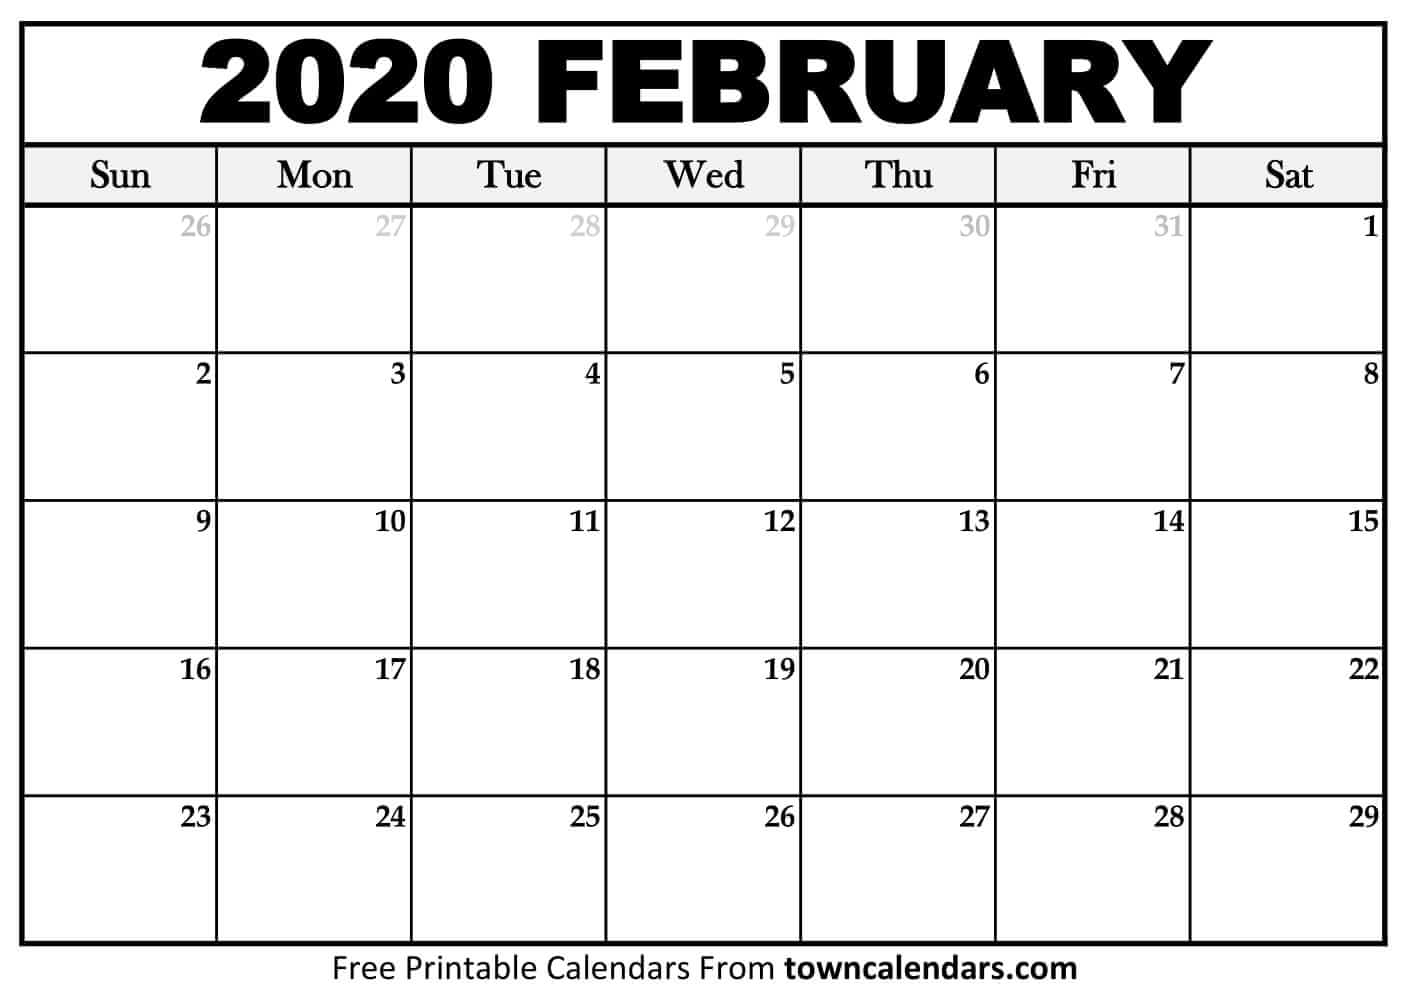 Printable February 2020 Calendar – Towncalendars – Printable inside 2020 December Calendar 8 X11 Printable